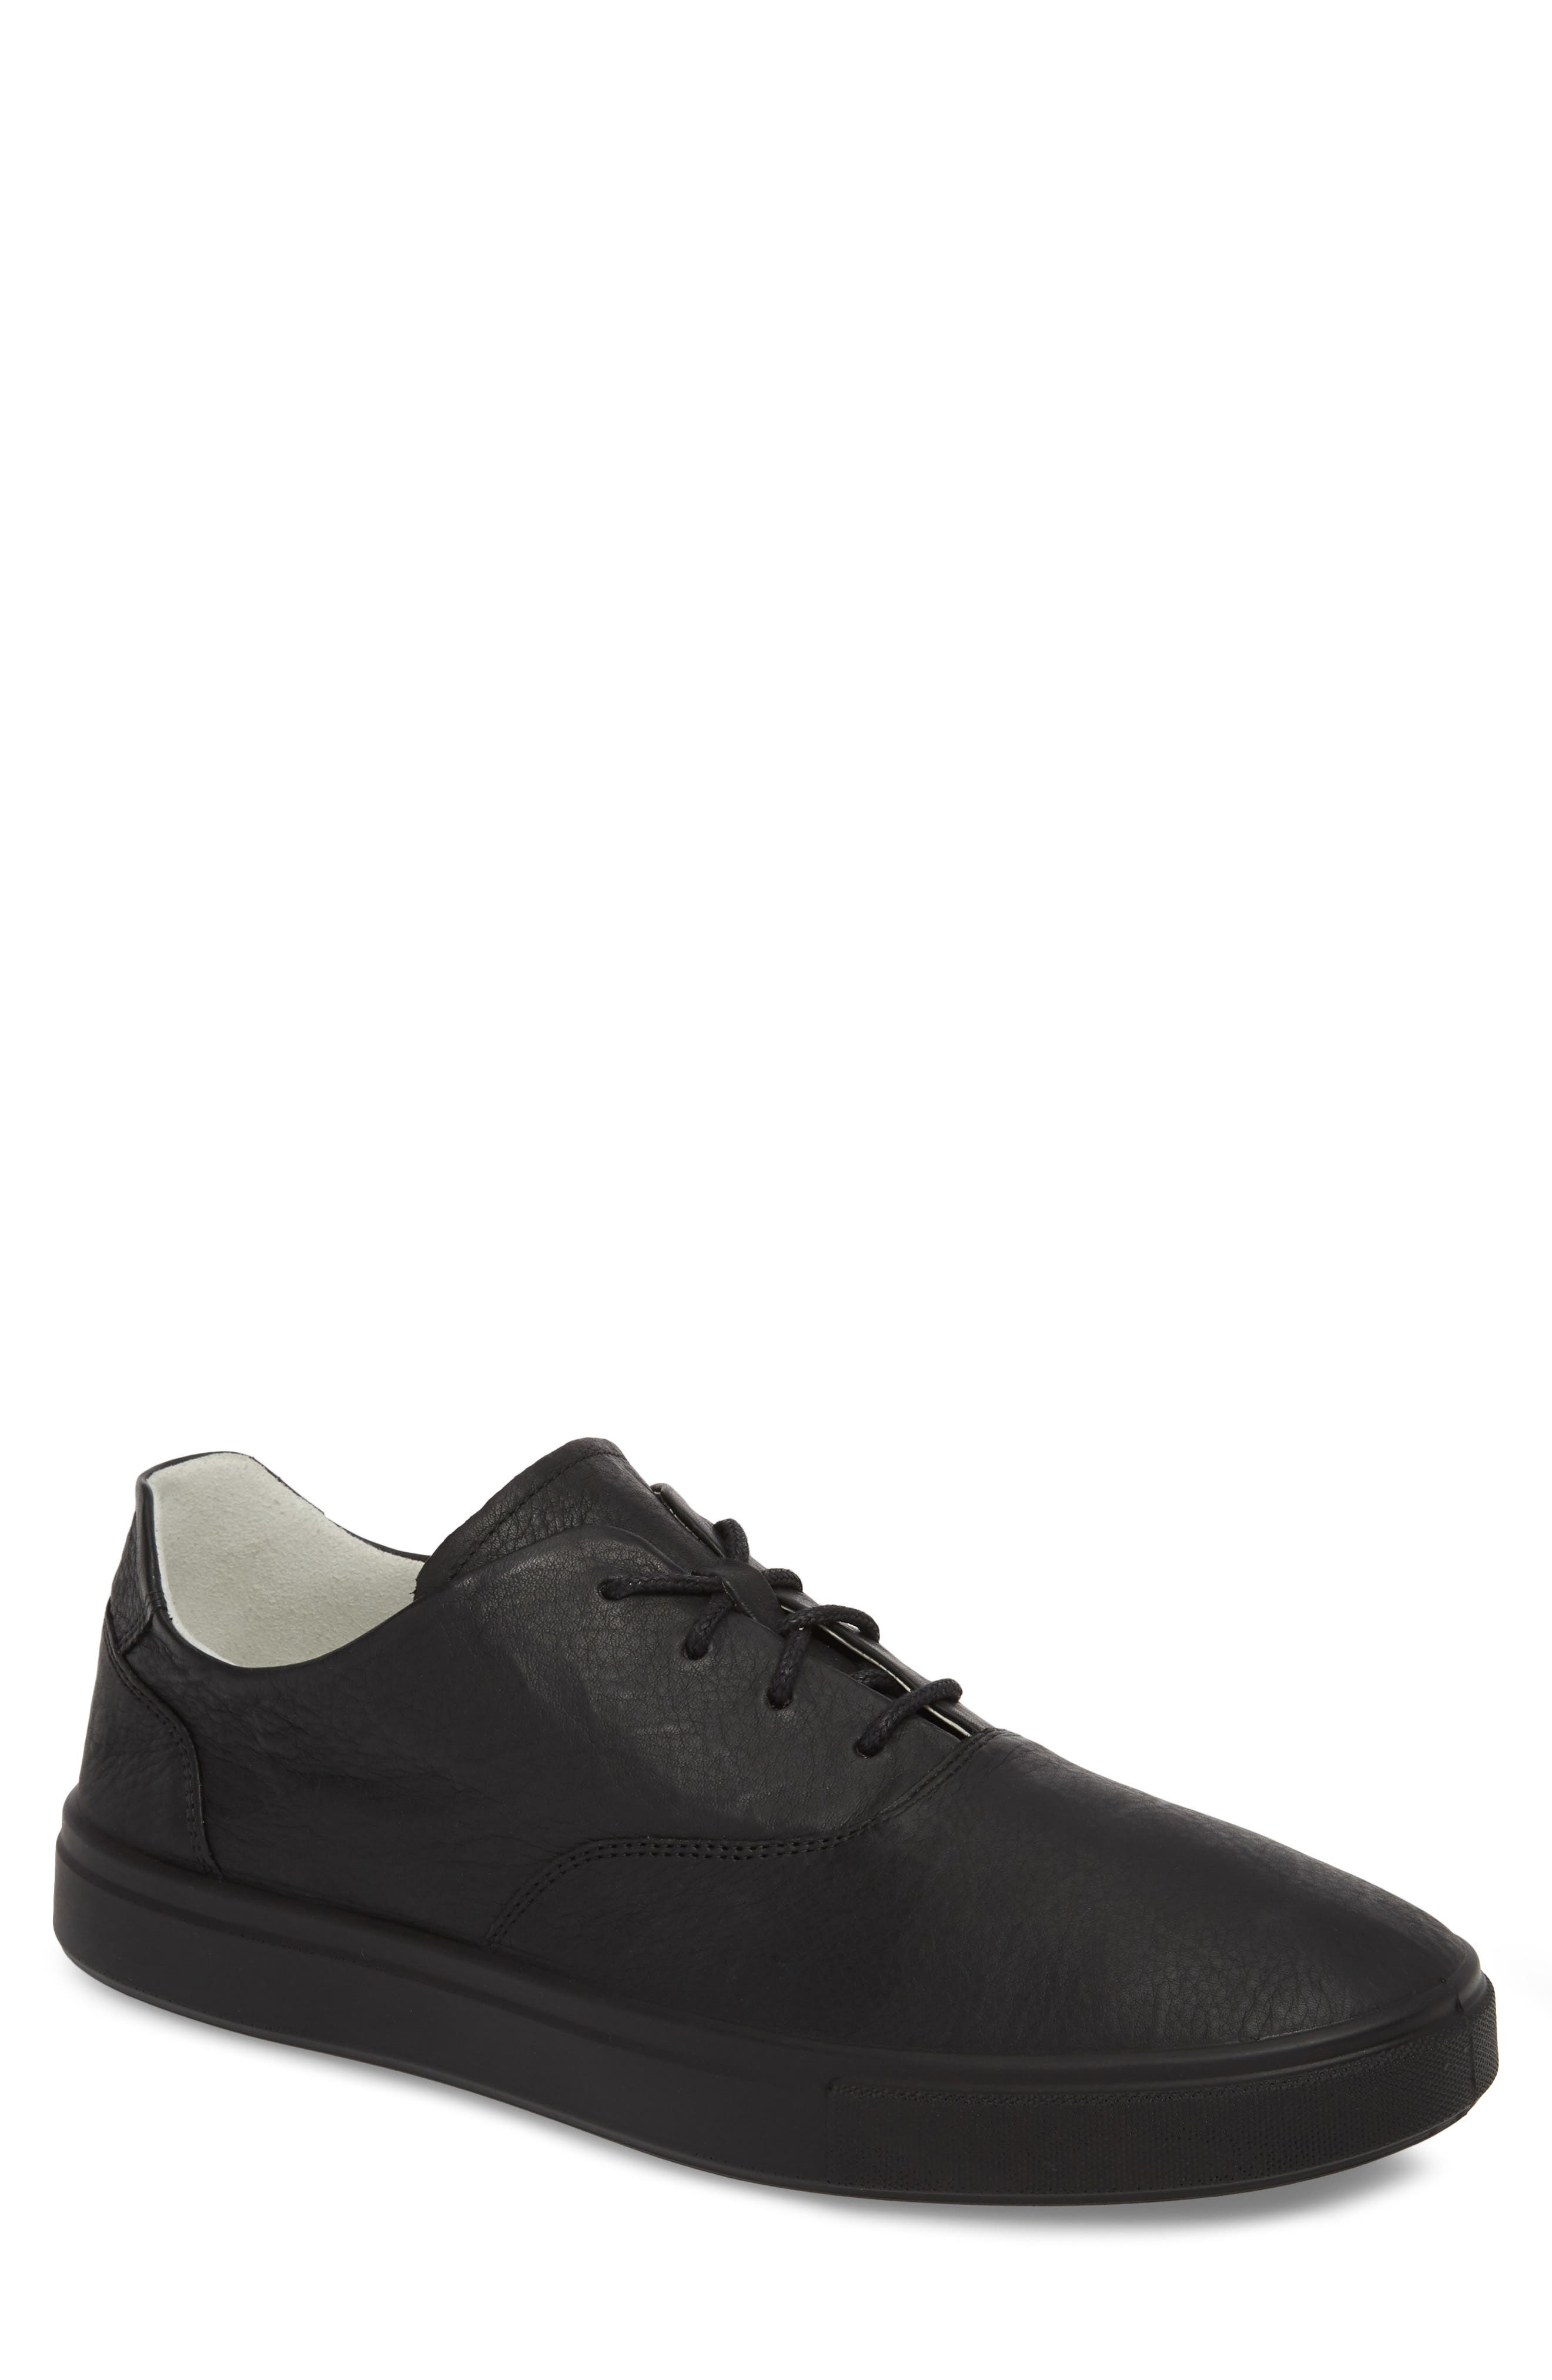 Kyle Low Top Sneaker,                             Main thumbnail 1, color,                             Rinsed Black Leather